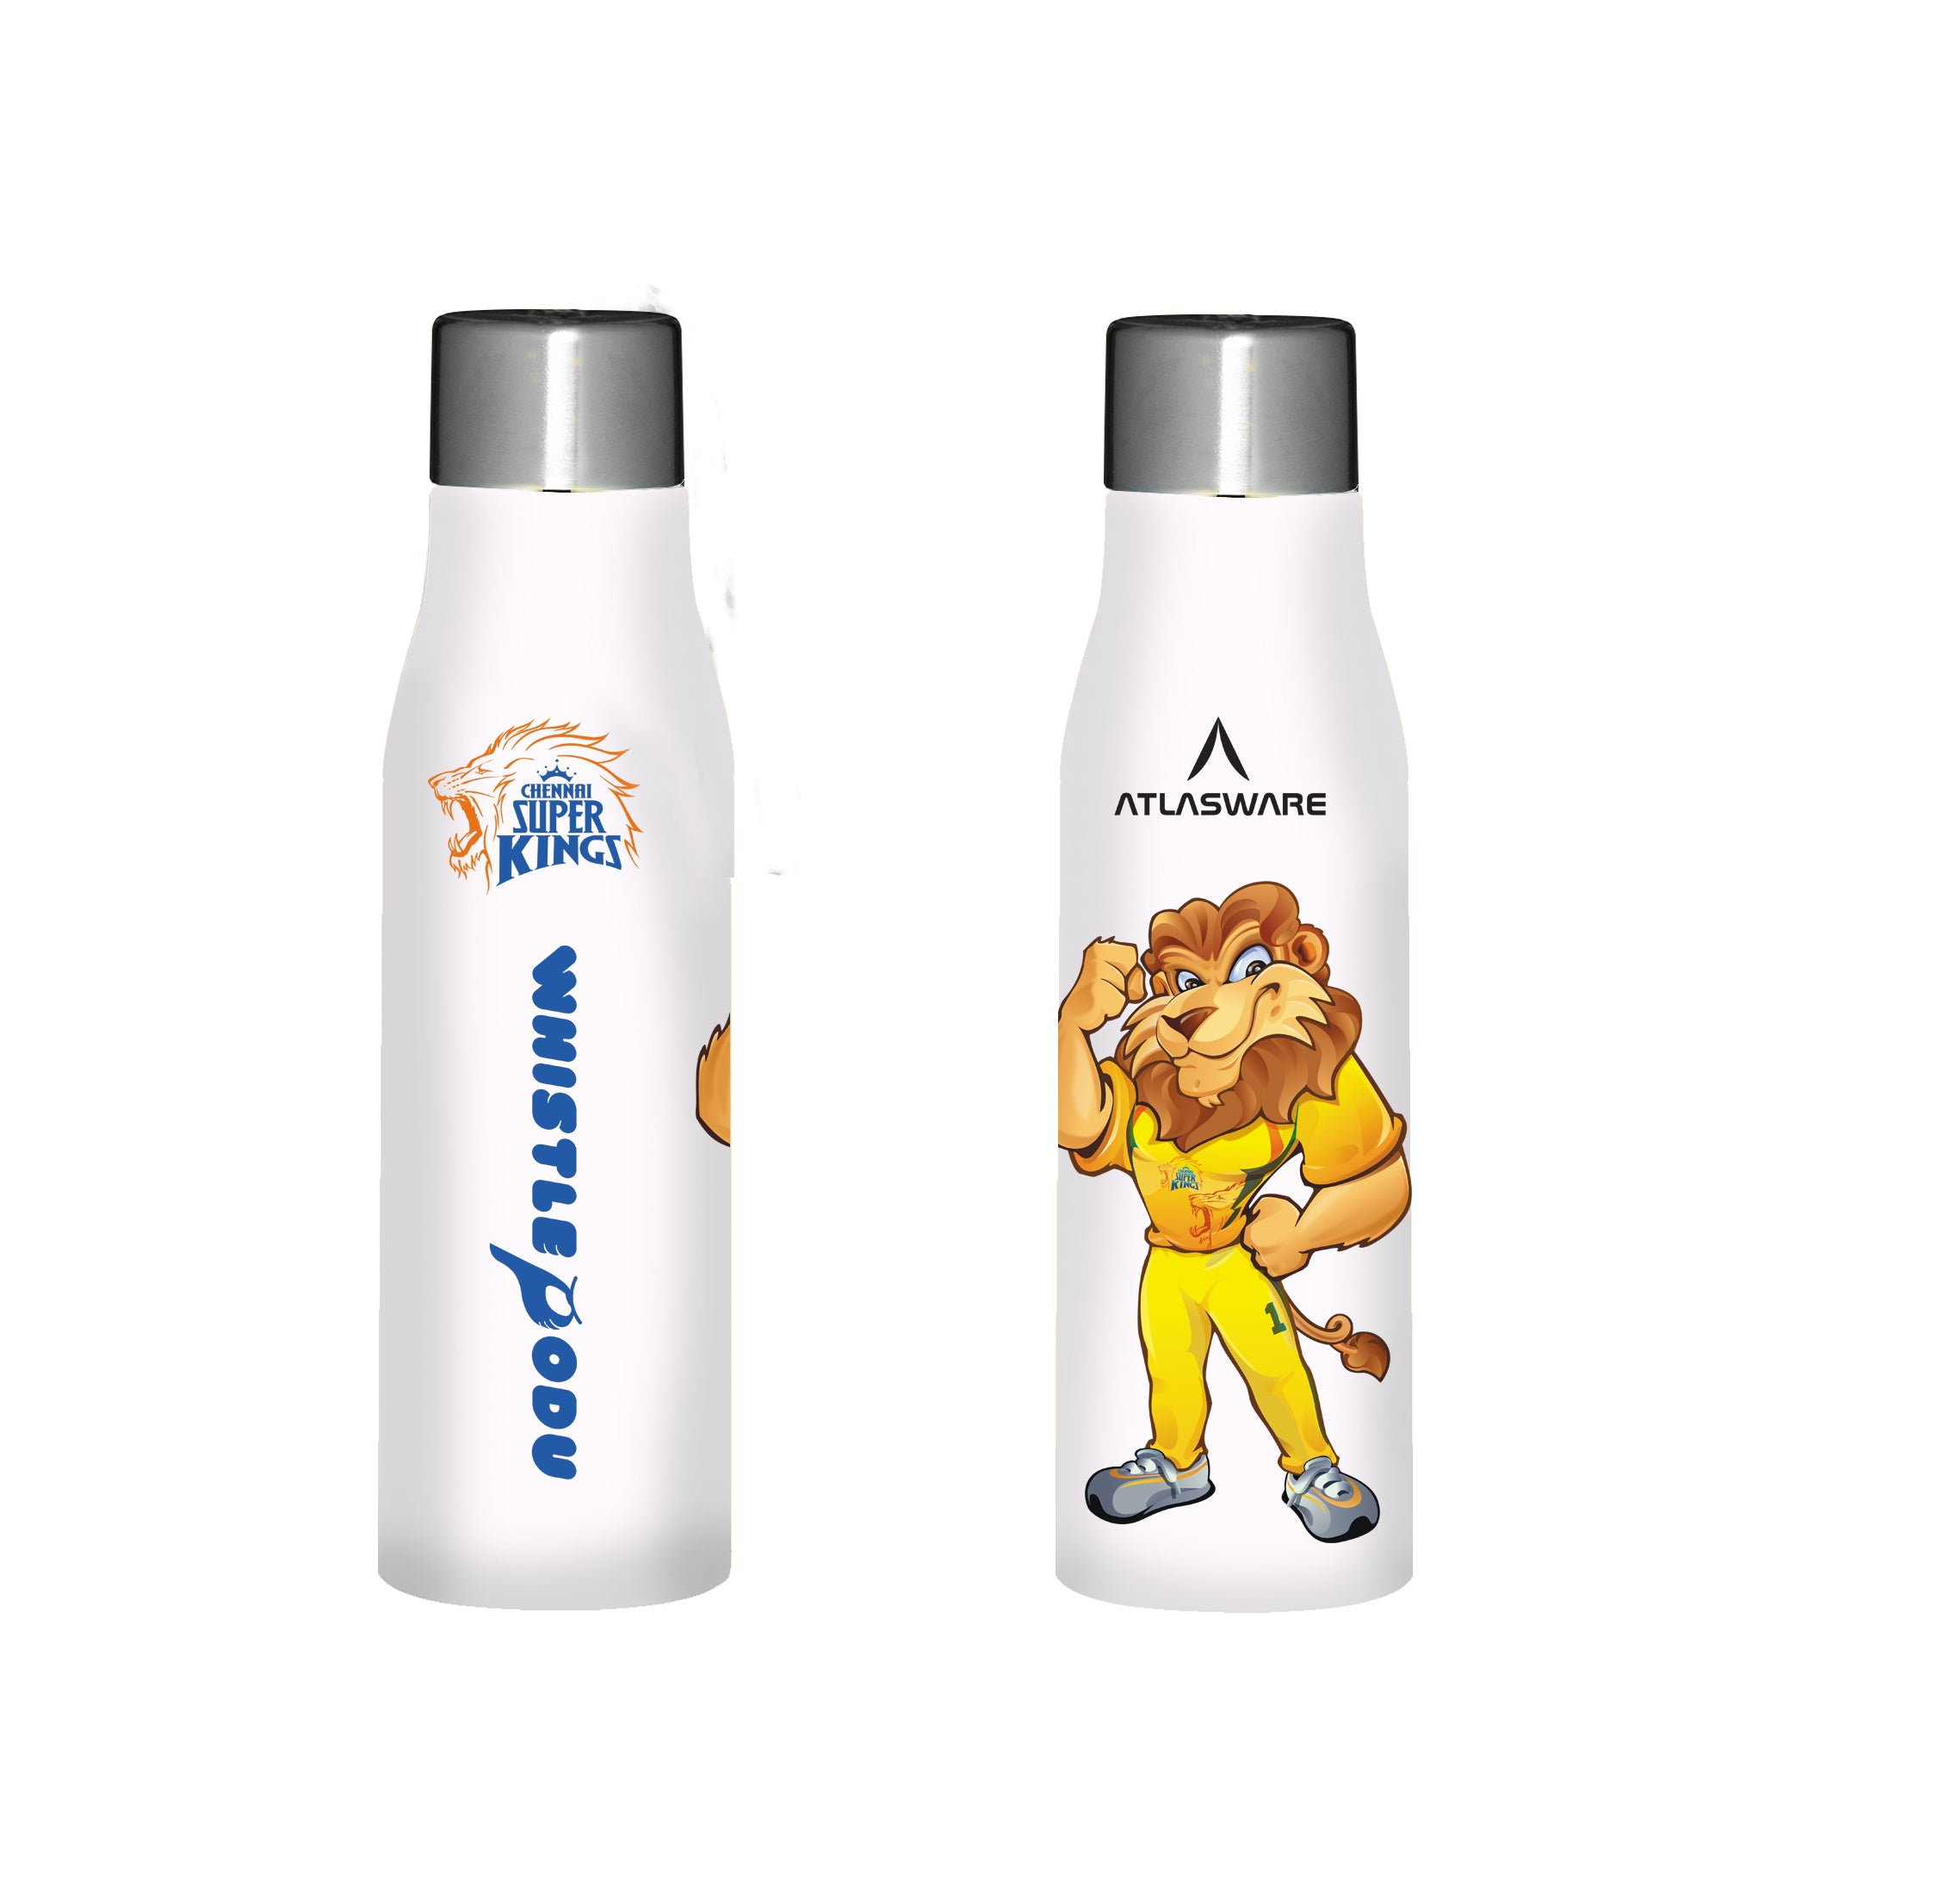 Chennai Super kings Leo designs stainless steel water bottle white